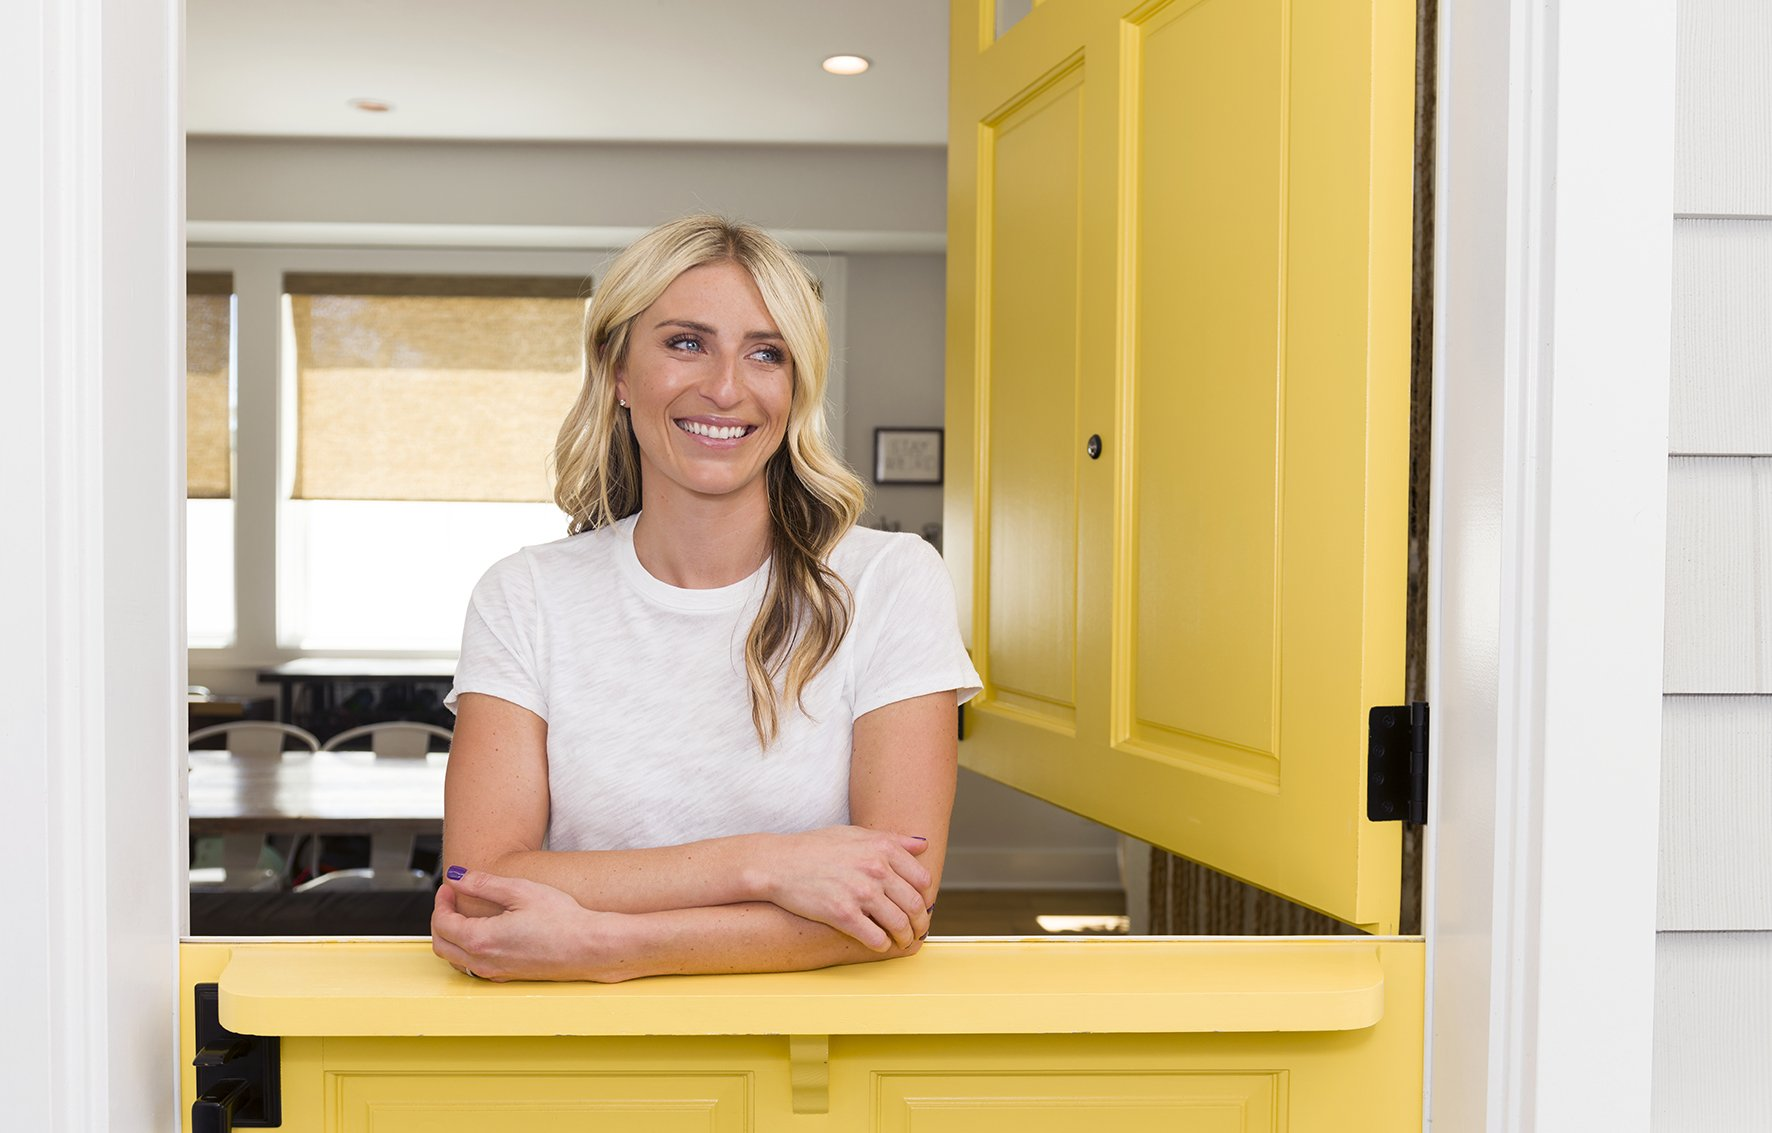 """Jasmine Roth of HGTV's television show """"Hidden Potential"""" at her home in Huntington Beach in 2018 